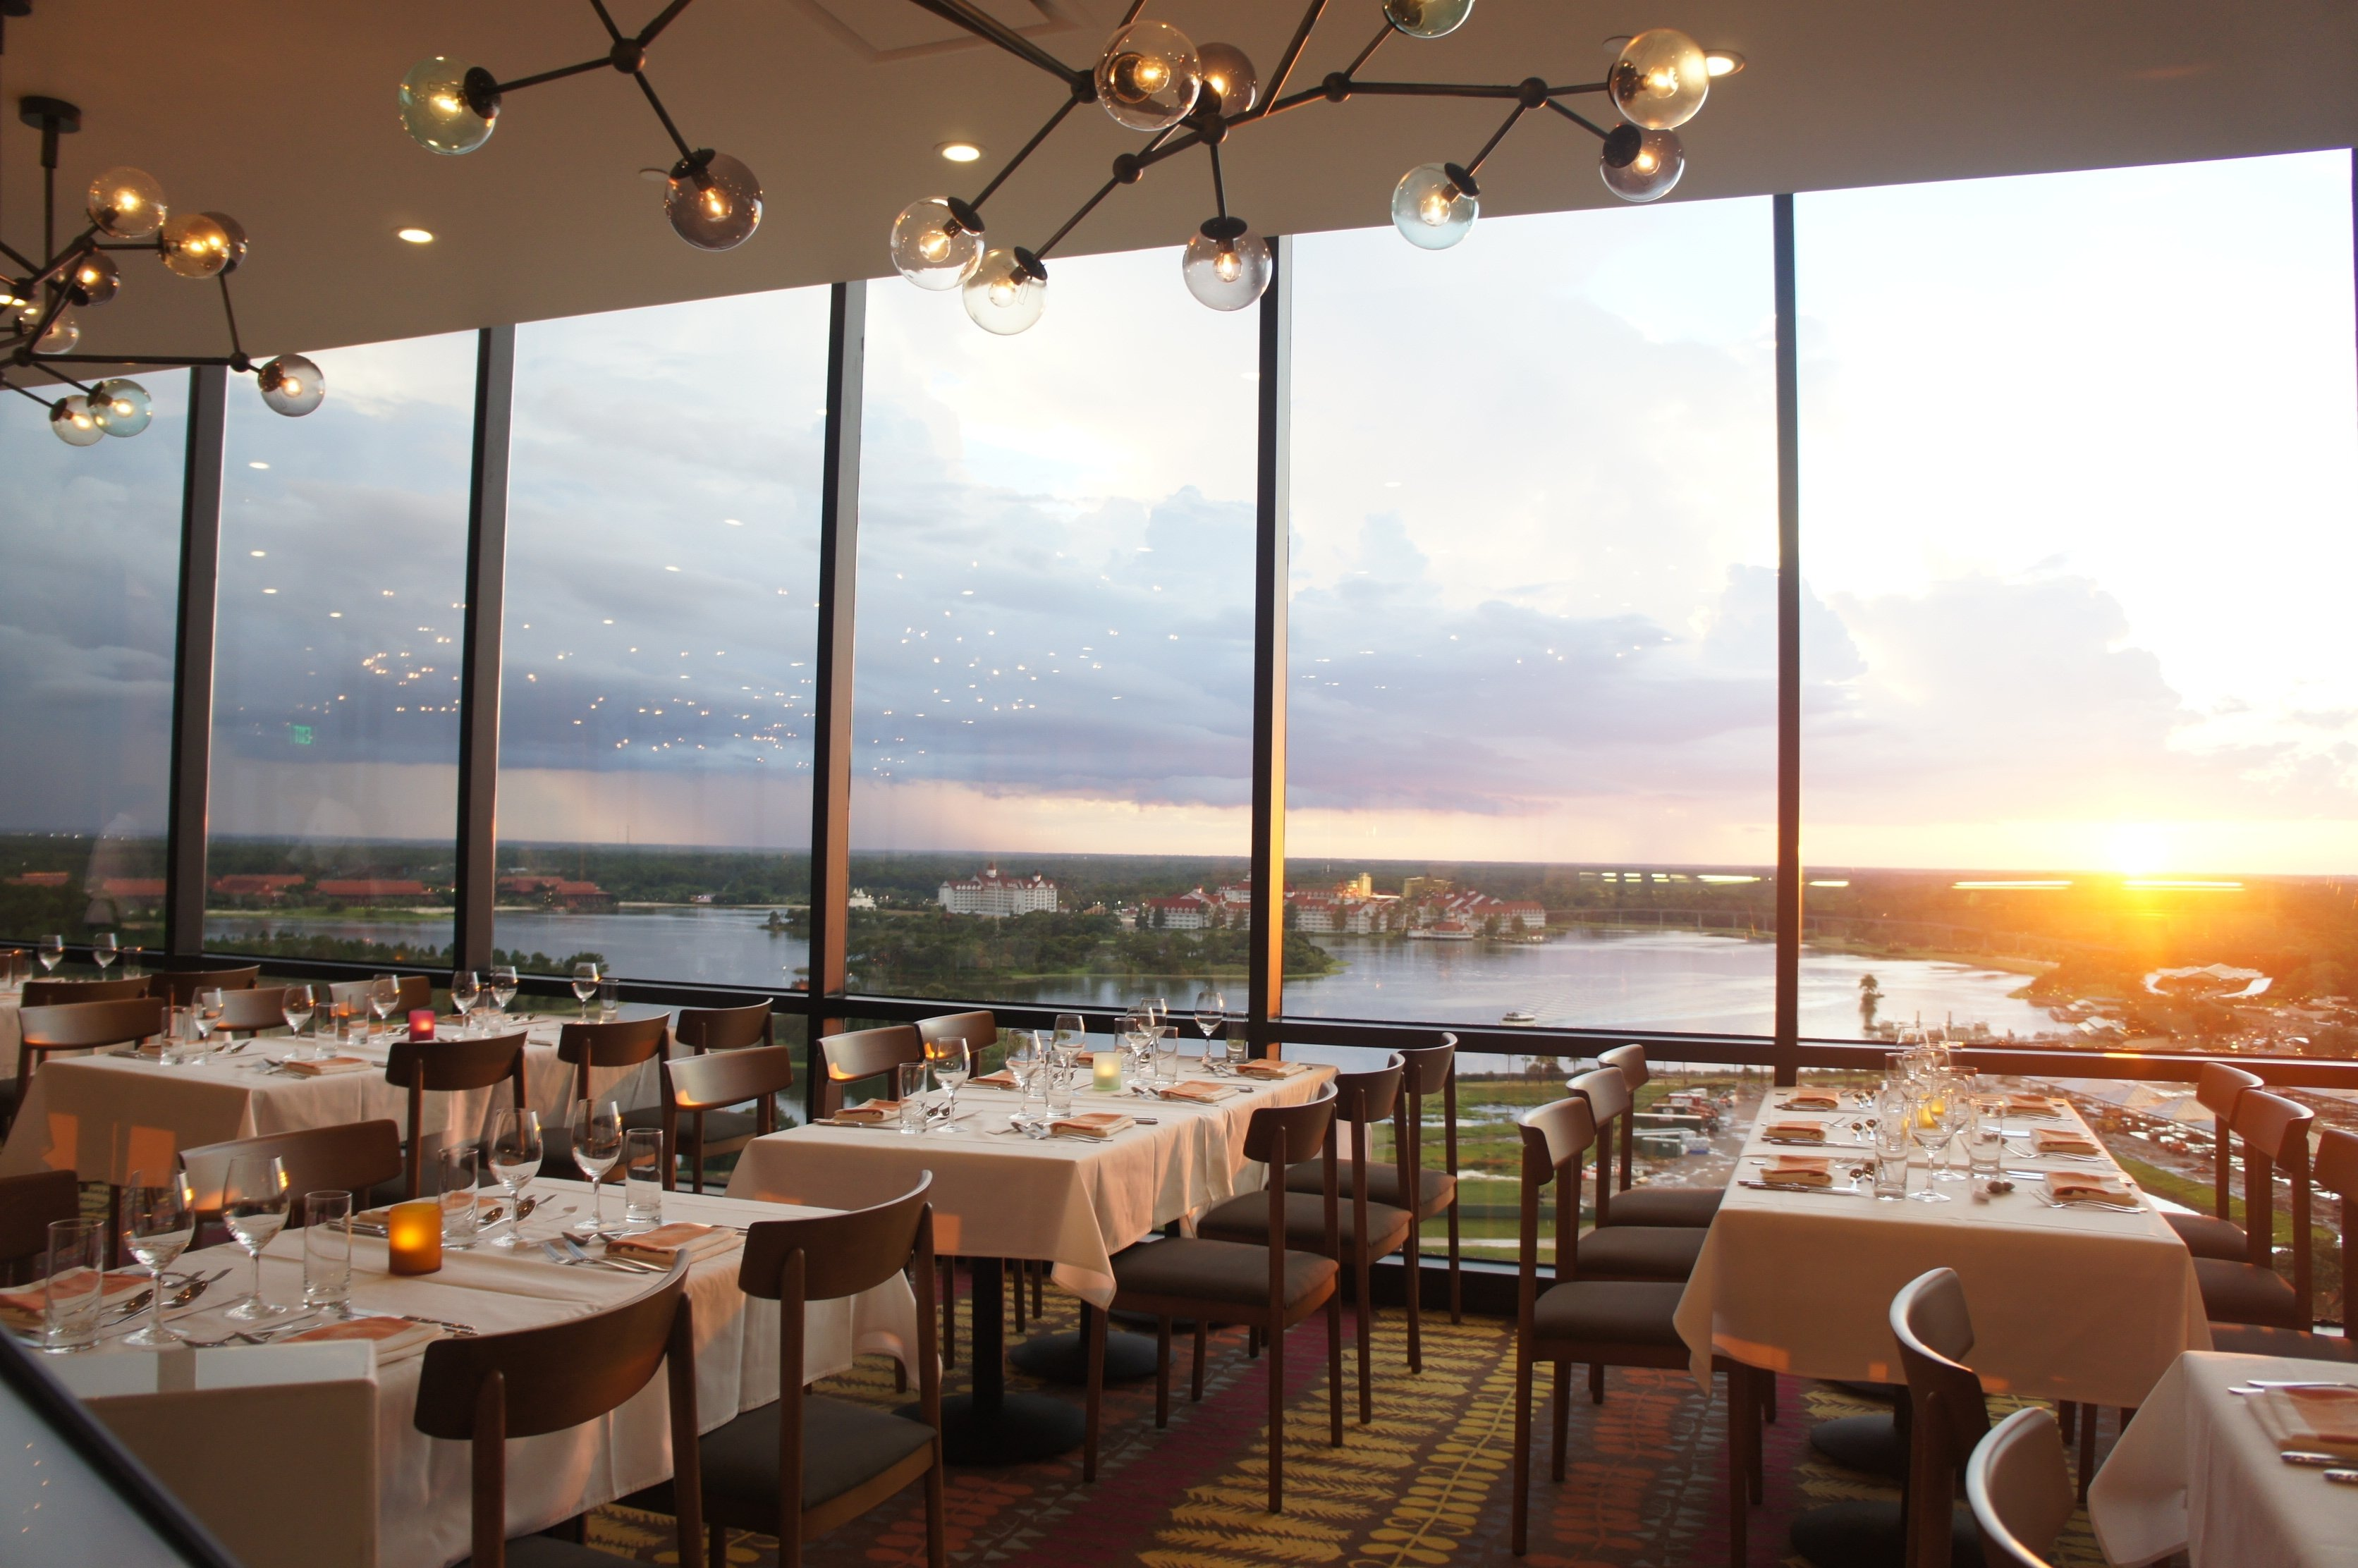 10 Most Popular Romantic Date Ideas In Orlando tastychompss 28 most romantic restaurants in orlando 2014